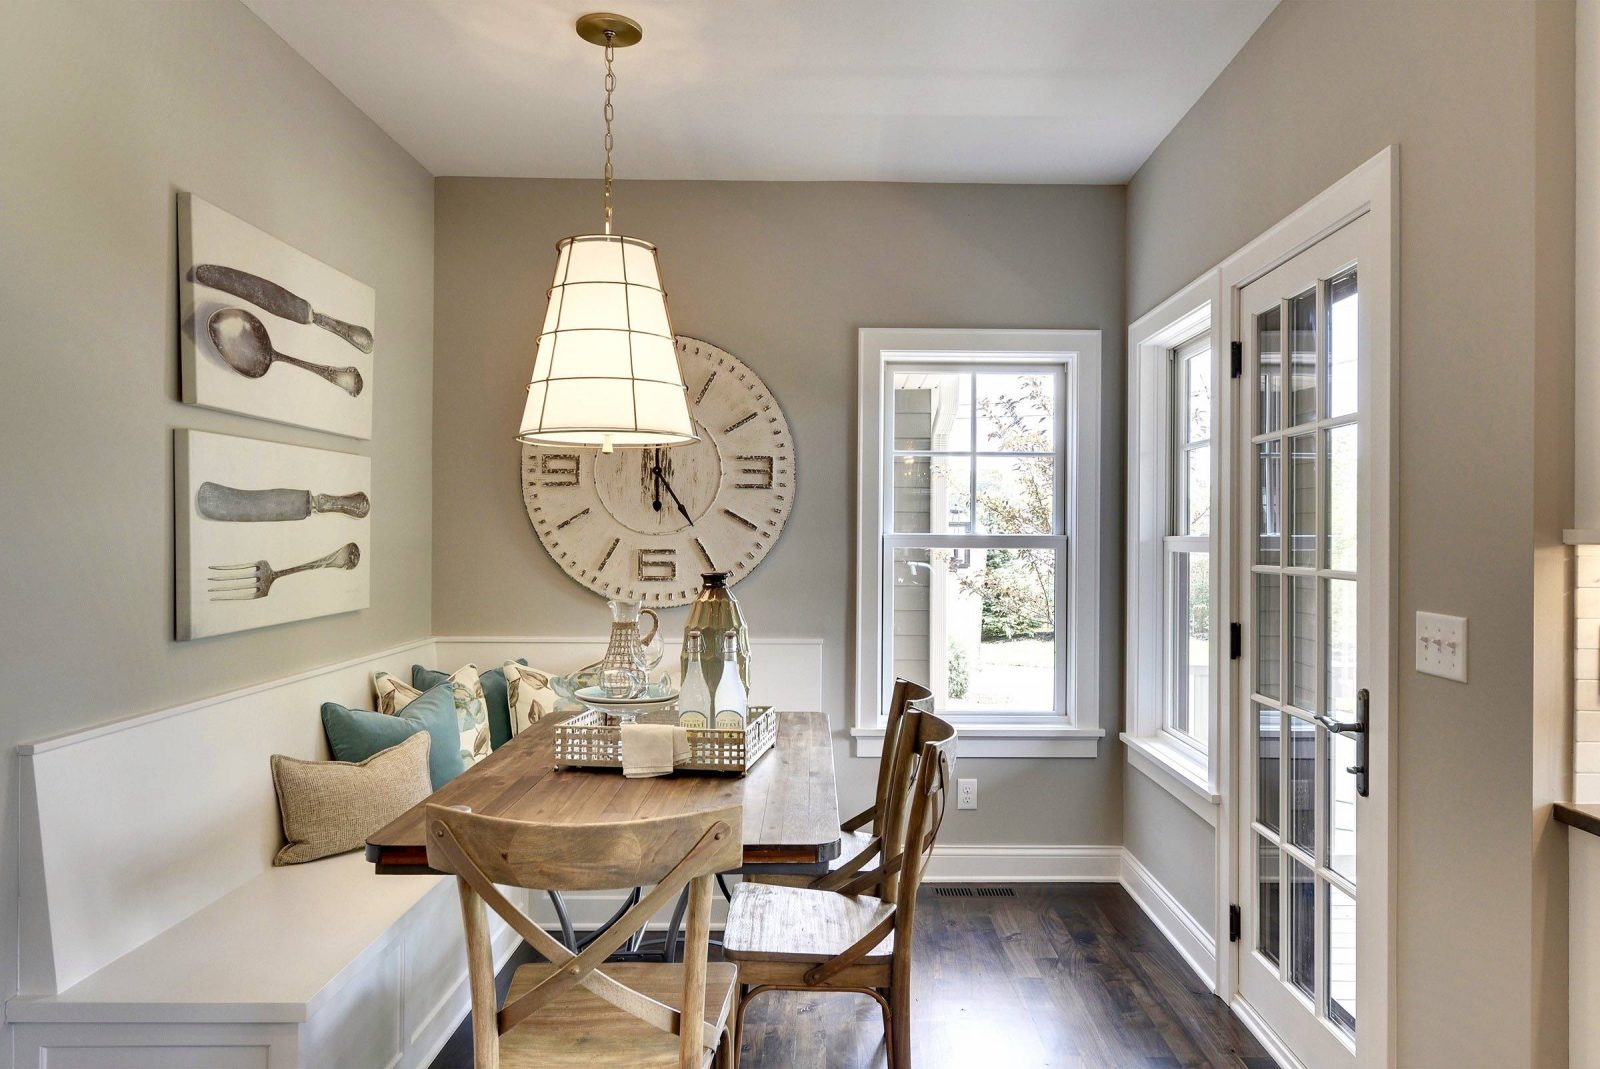 11 most amazing best gray paint colors sherwin williams to on paint colors by sherwin williams id=68399